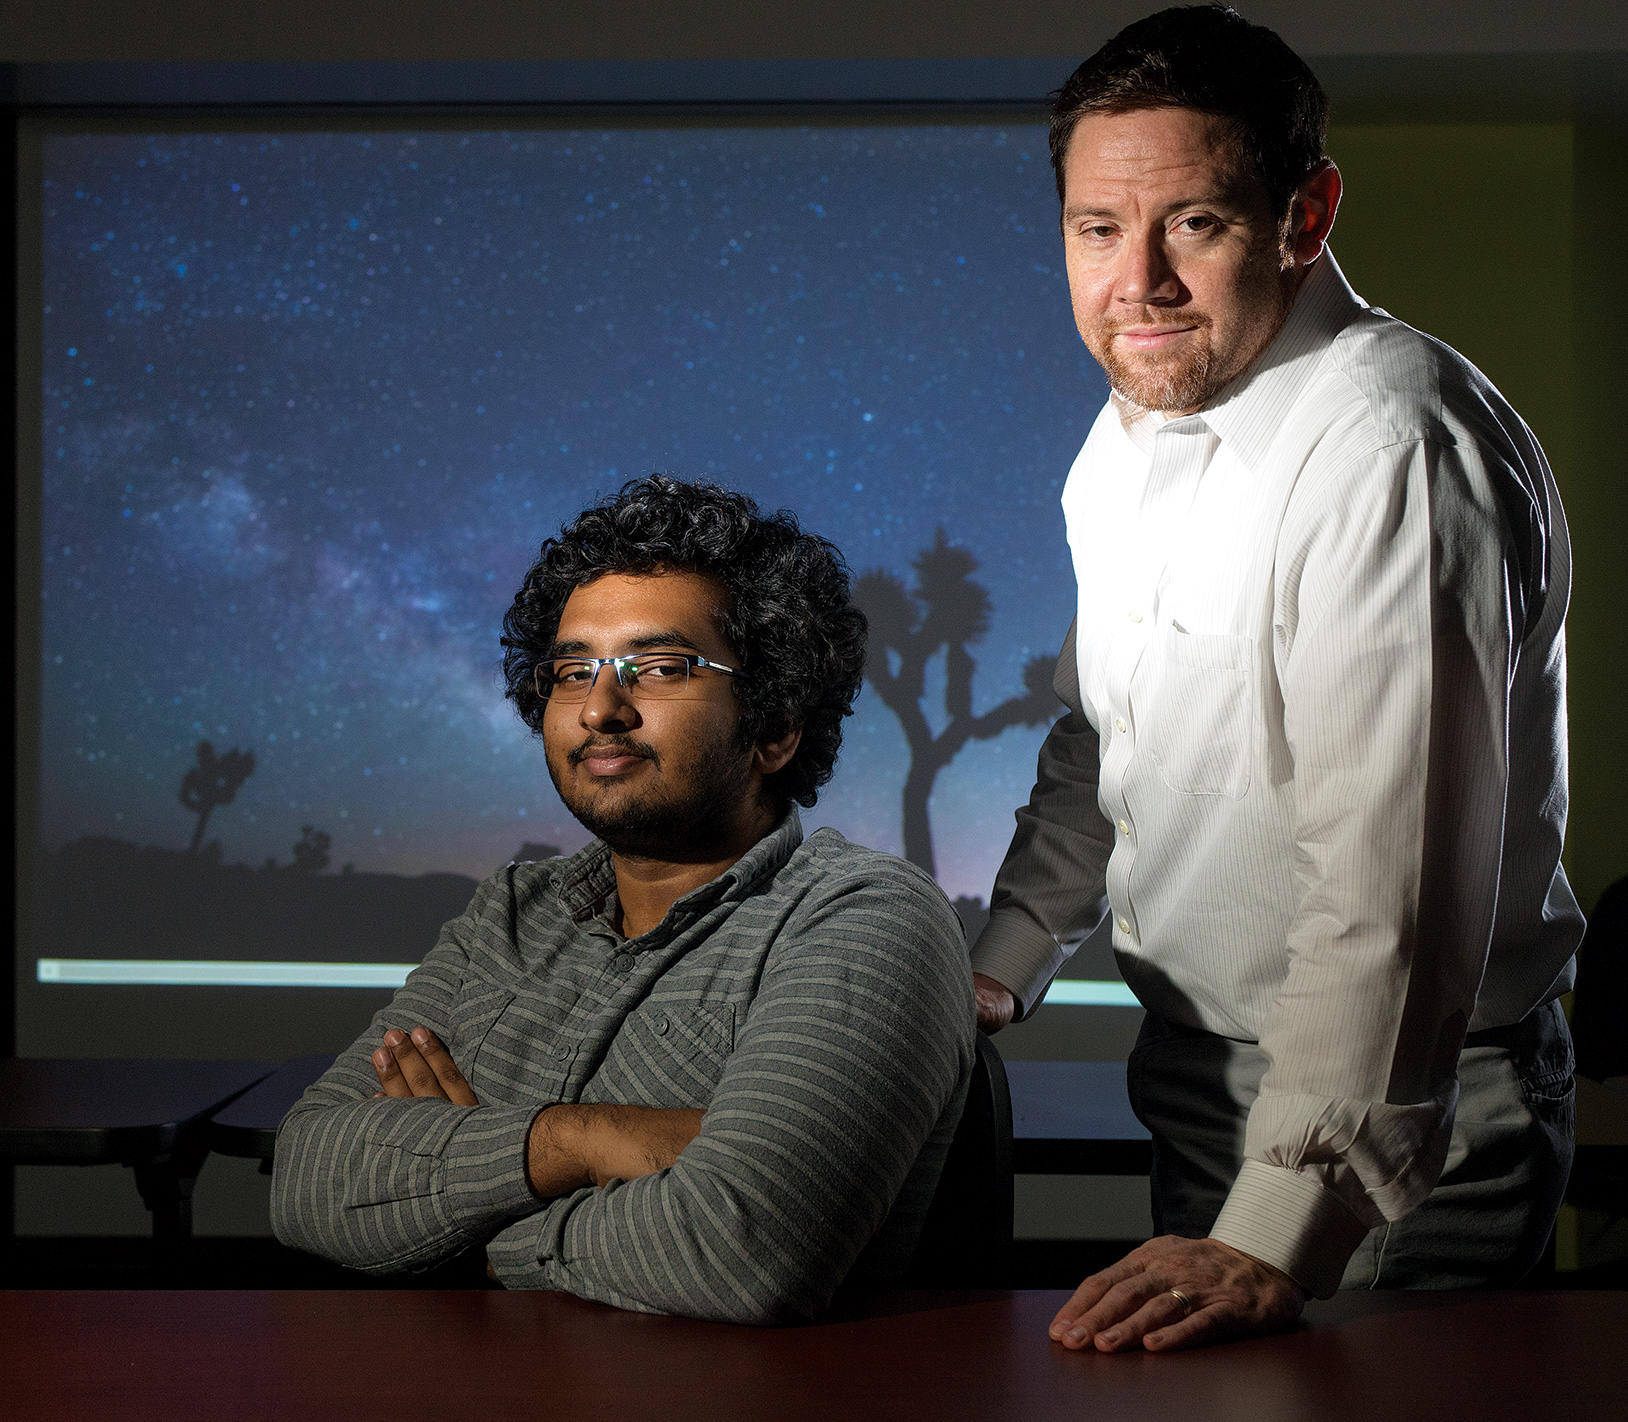 Student researcher Tharindu Jayasinghe, left, and Professor Matthew Povich of the physics and astronomy department lead the Milky Way Project based at Cal Poly Pomona.